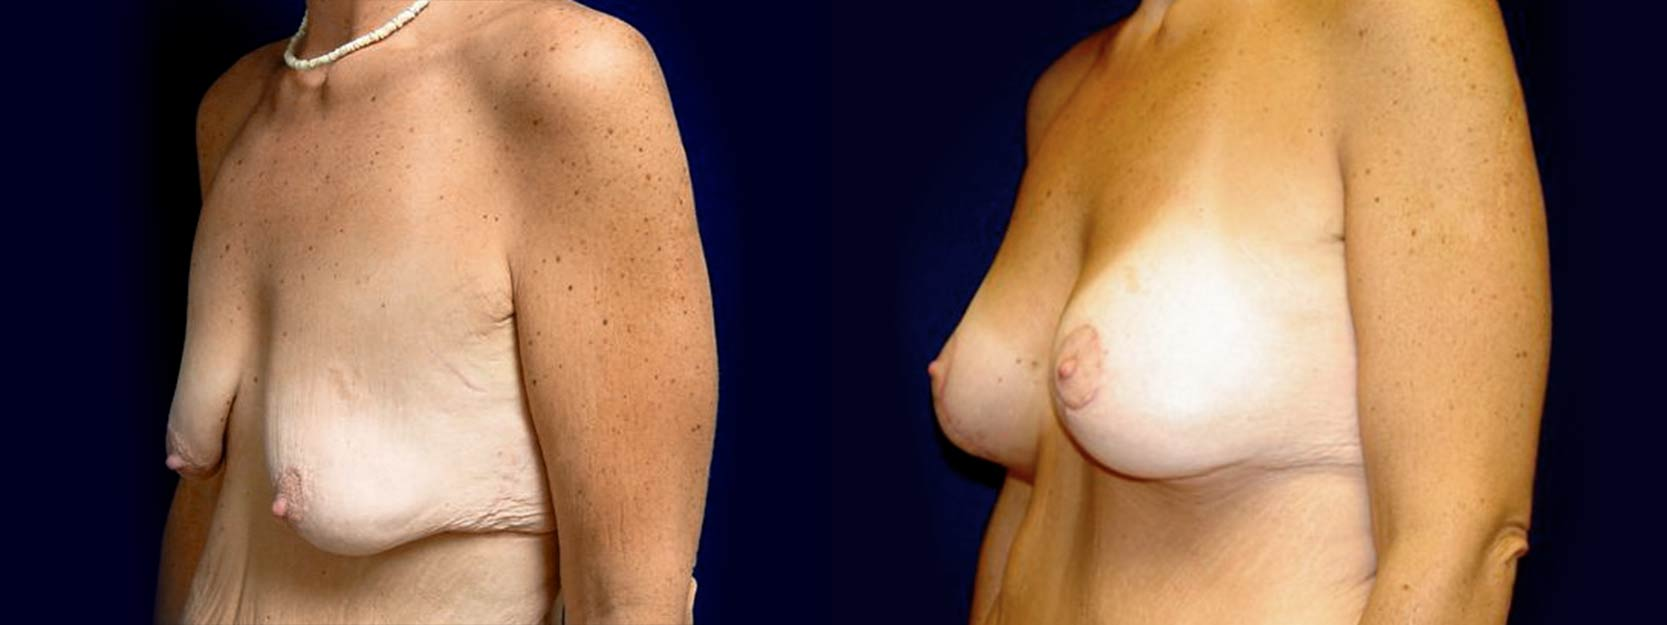 Left 3/4 View - Breast Augmentation with Lift After Massive Weight Loss